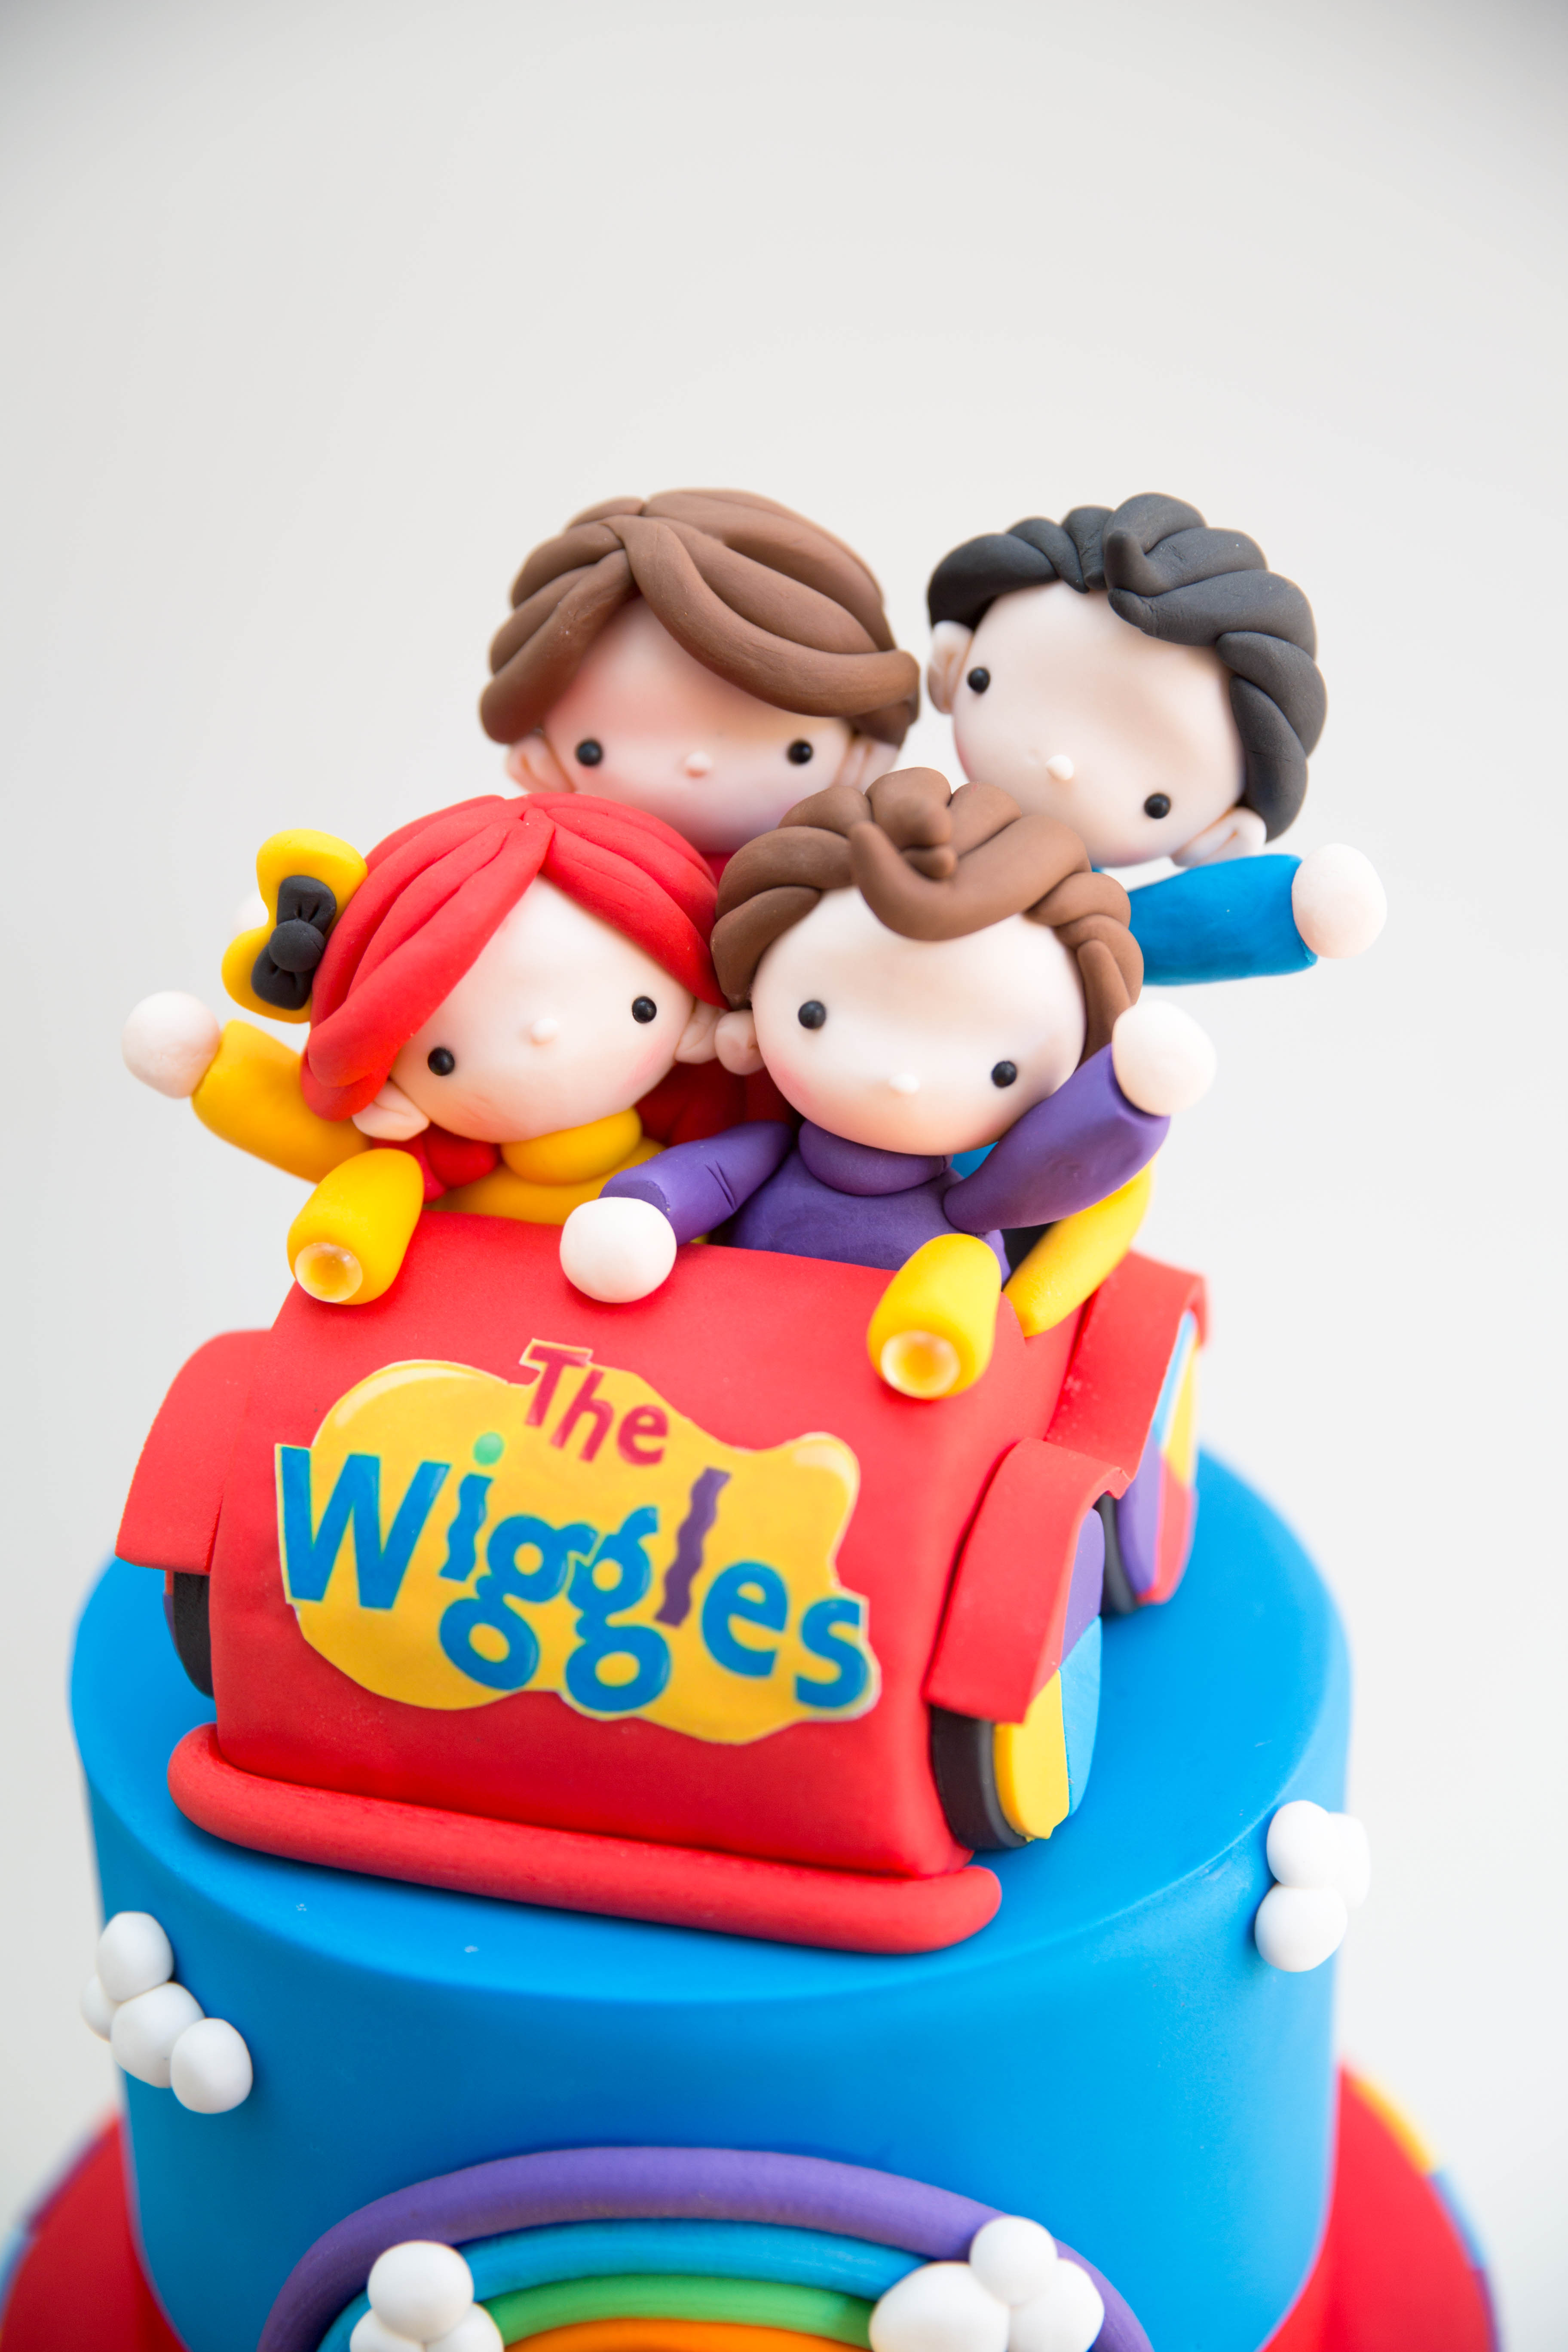 The wiggles themed birthday